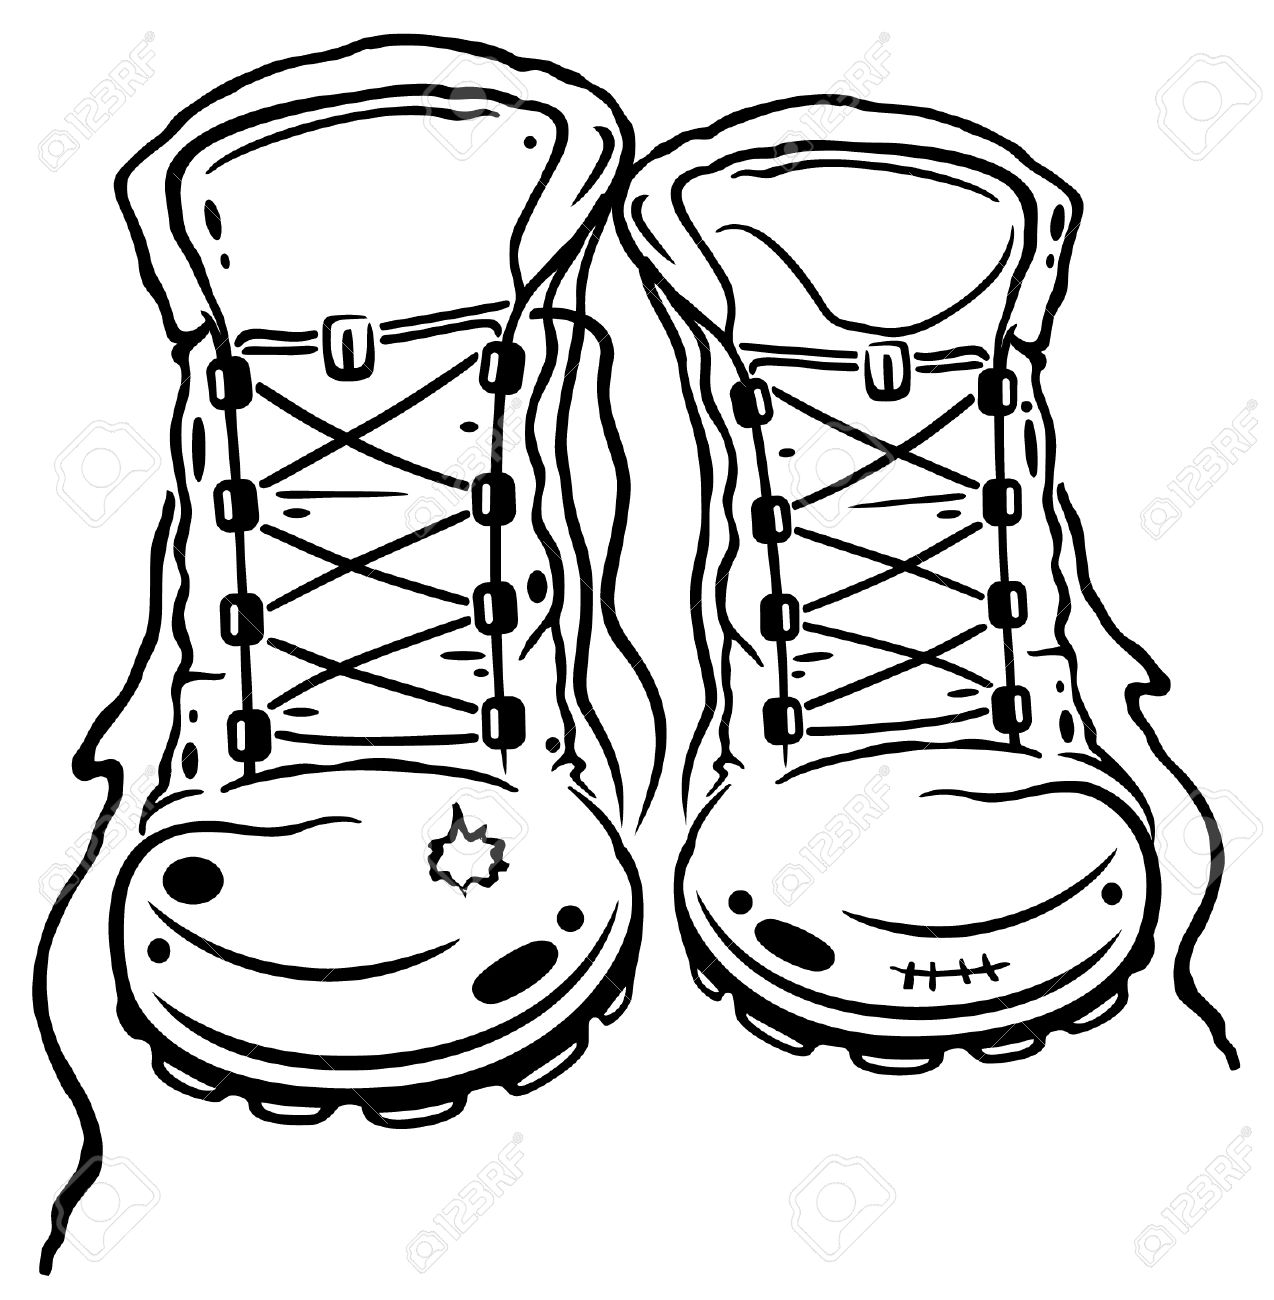 Hiking Boots Clipart Black And White.